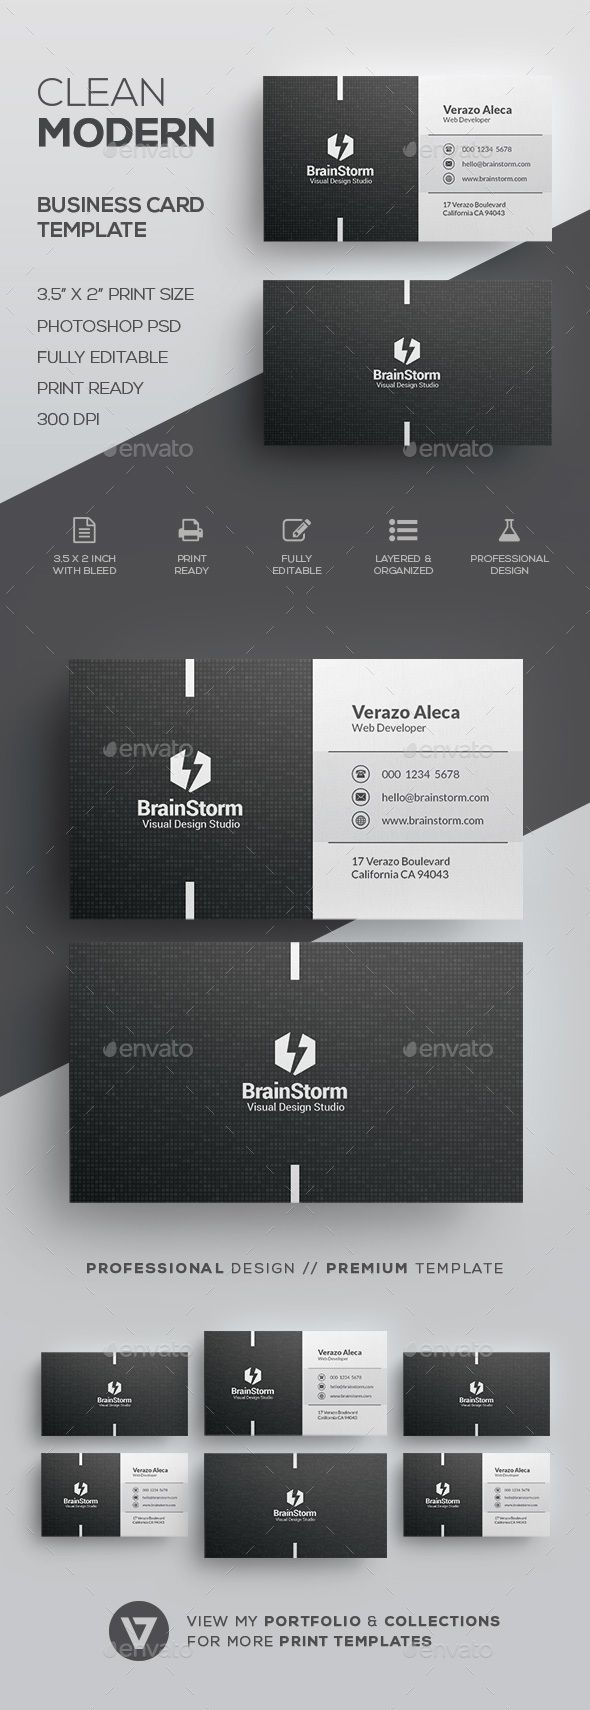 Clean Business Card Template Corporate Business Cards Download - Buy business card template